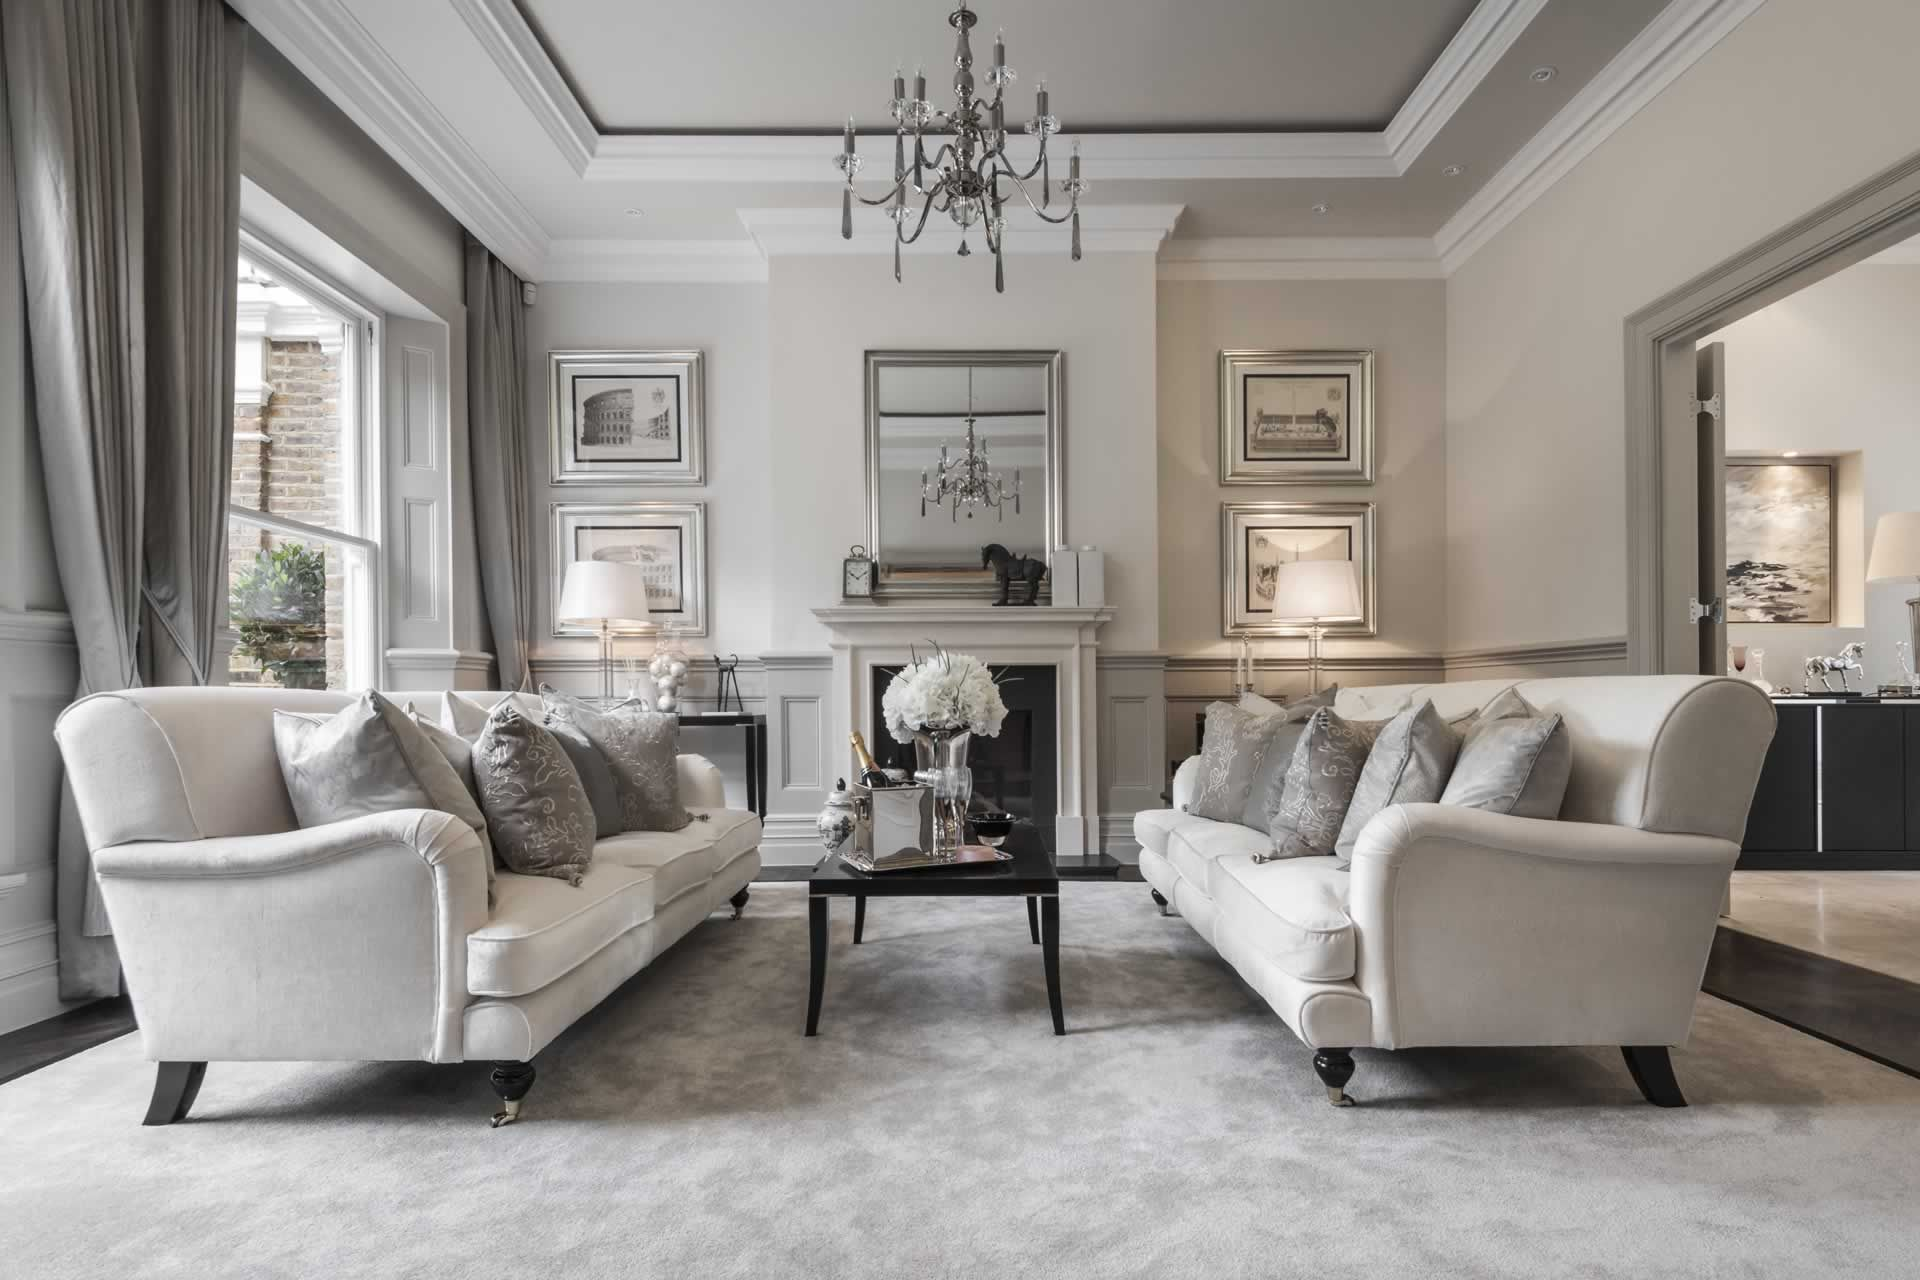 Alexander james interiors carry out a full range of interior design services for show homes and - Work of home interior designer ...